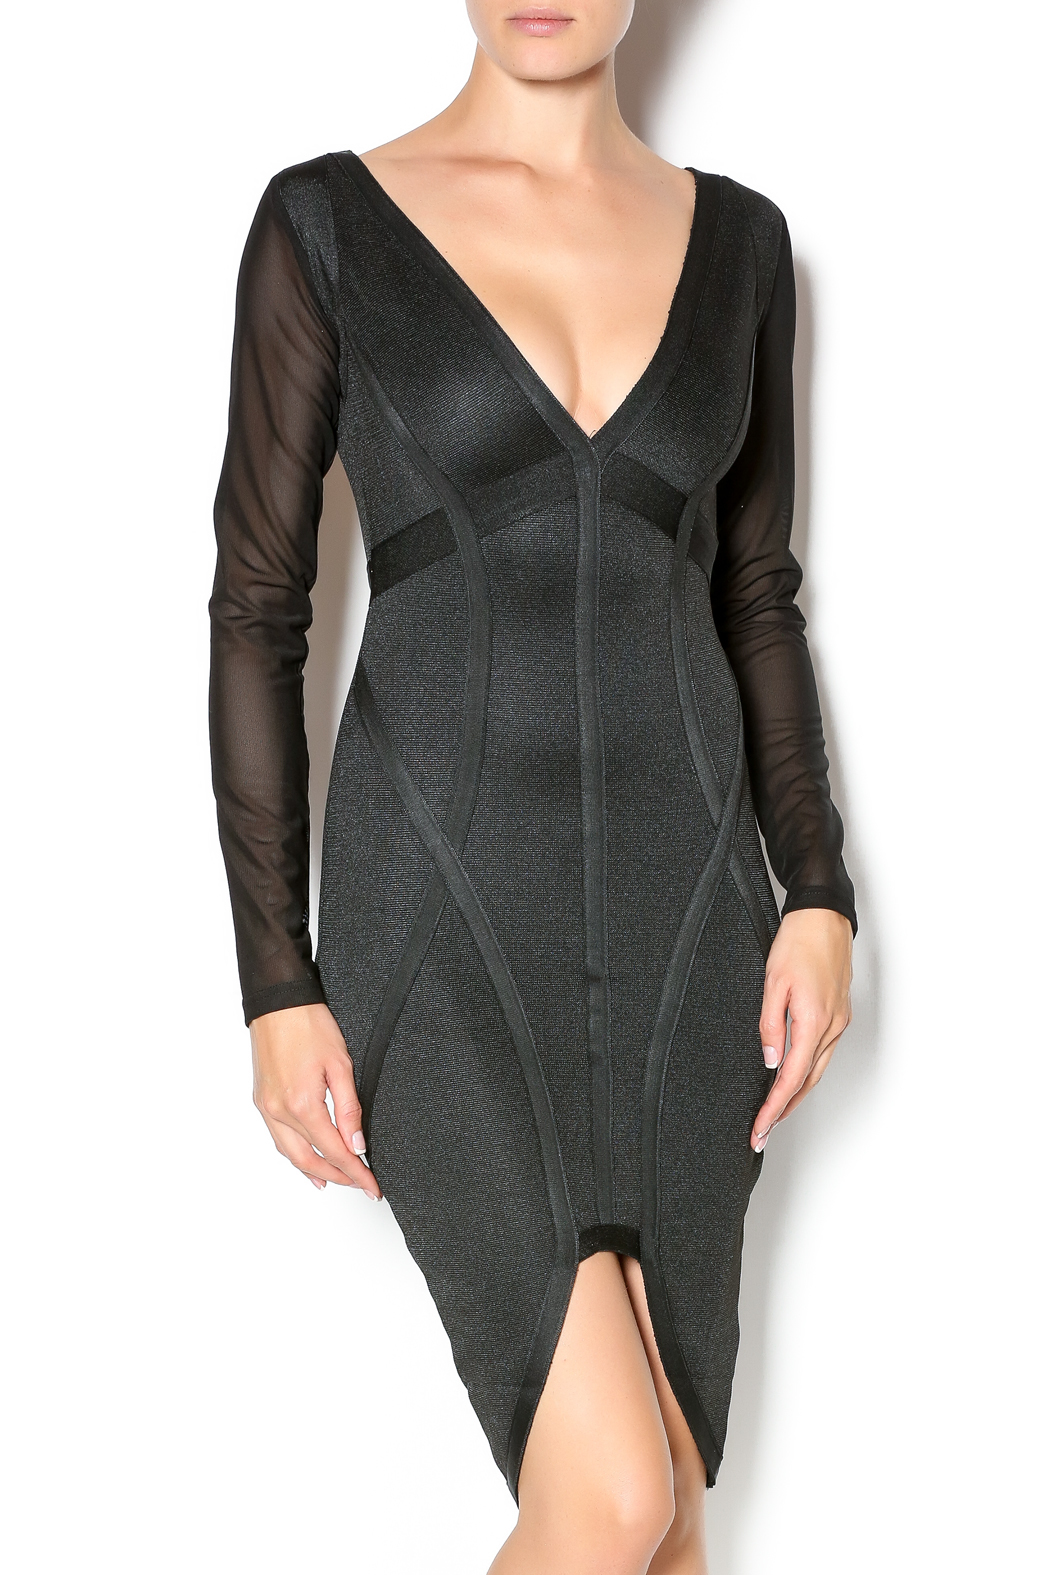 Wow Couture Long Sleeve Bandage Dress from New York by Dor L Dor ... 83768c3c7e1e